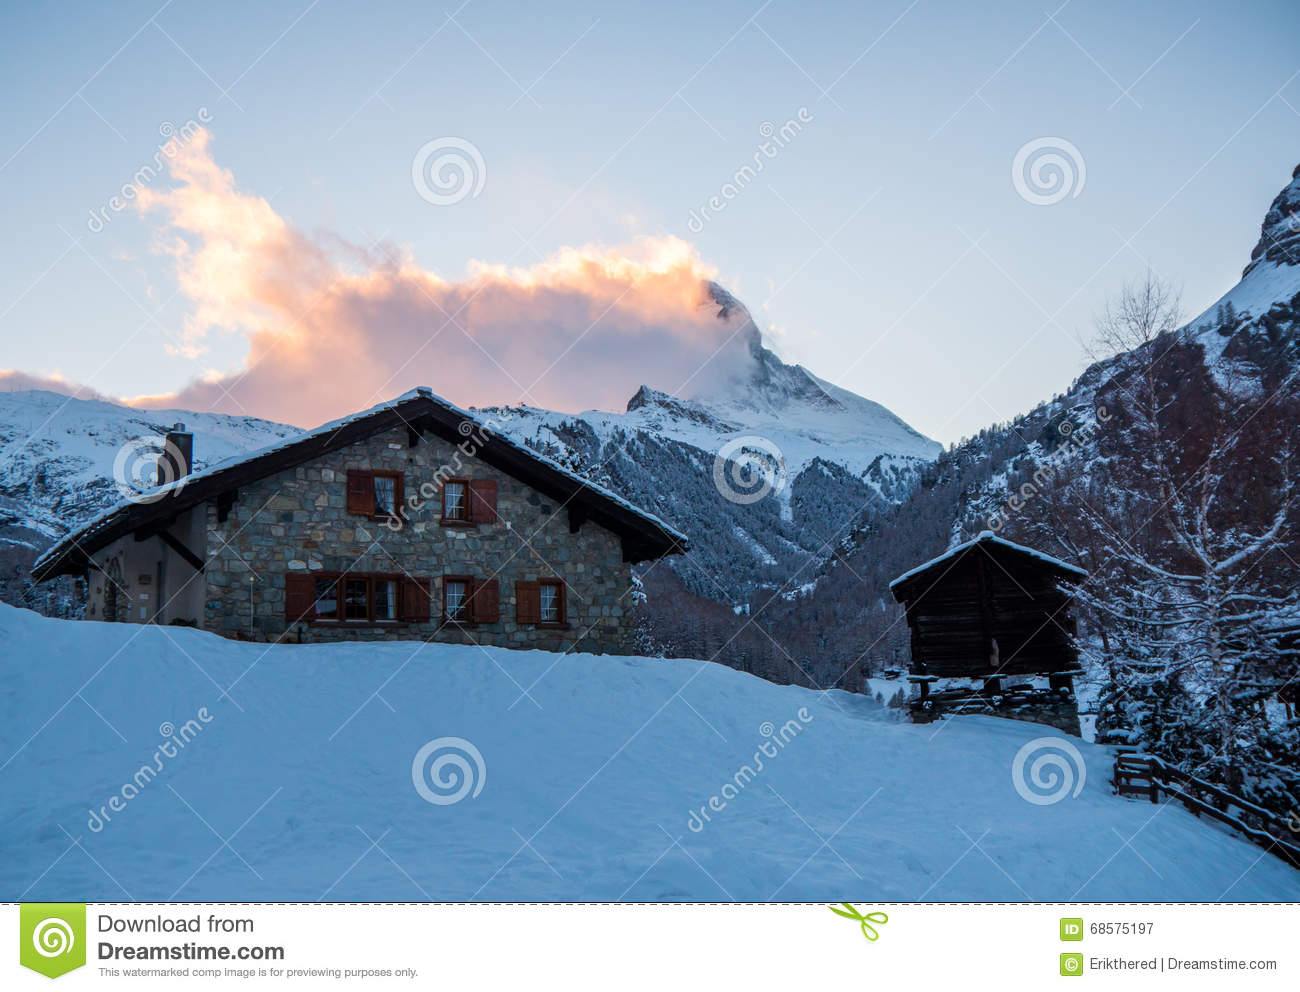 Stone Chalet With The Matterhorn In The Background In The Swiss .